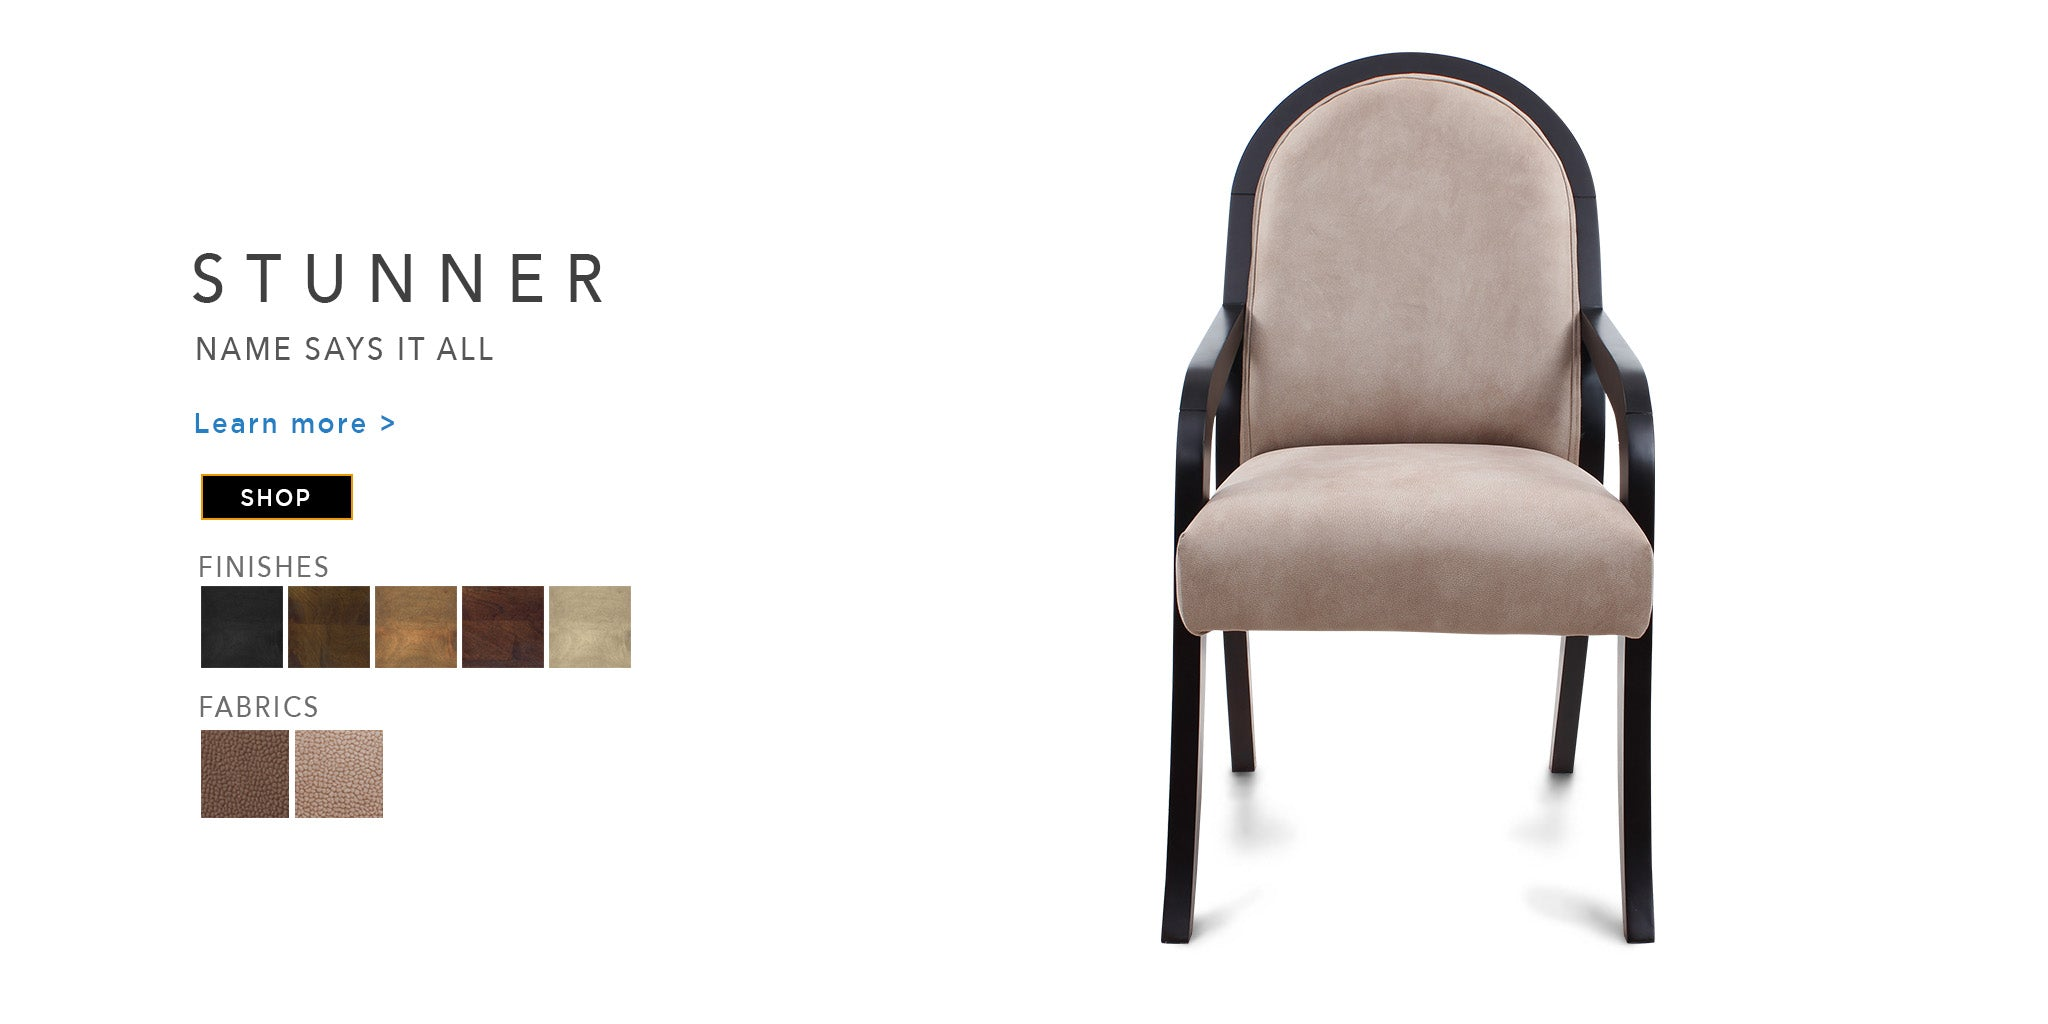 Counter Culture Stunner Dining Chair Catalogue Image